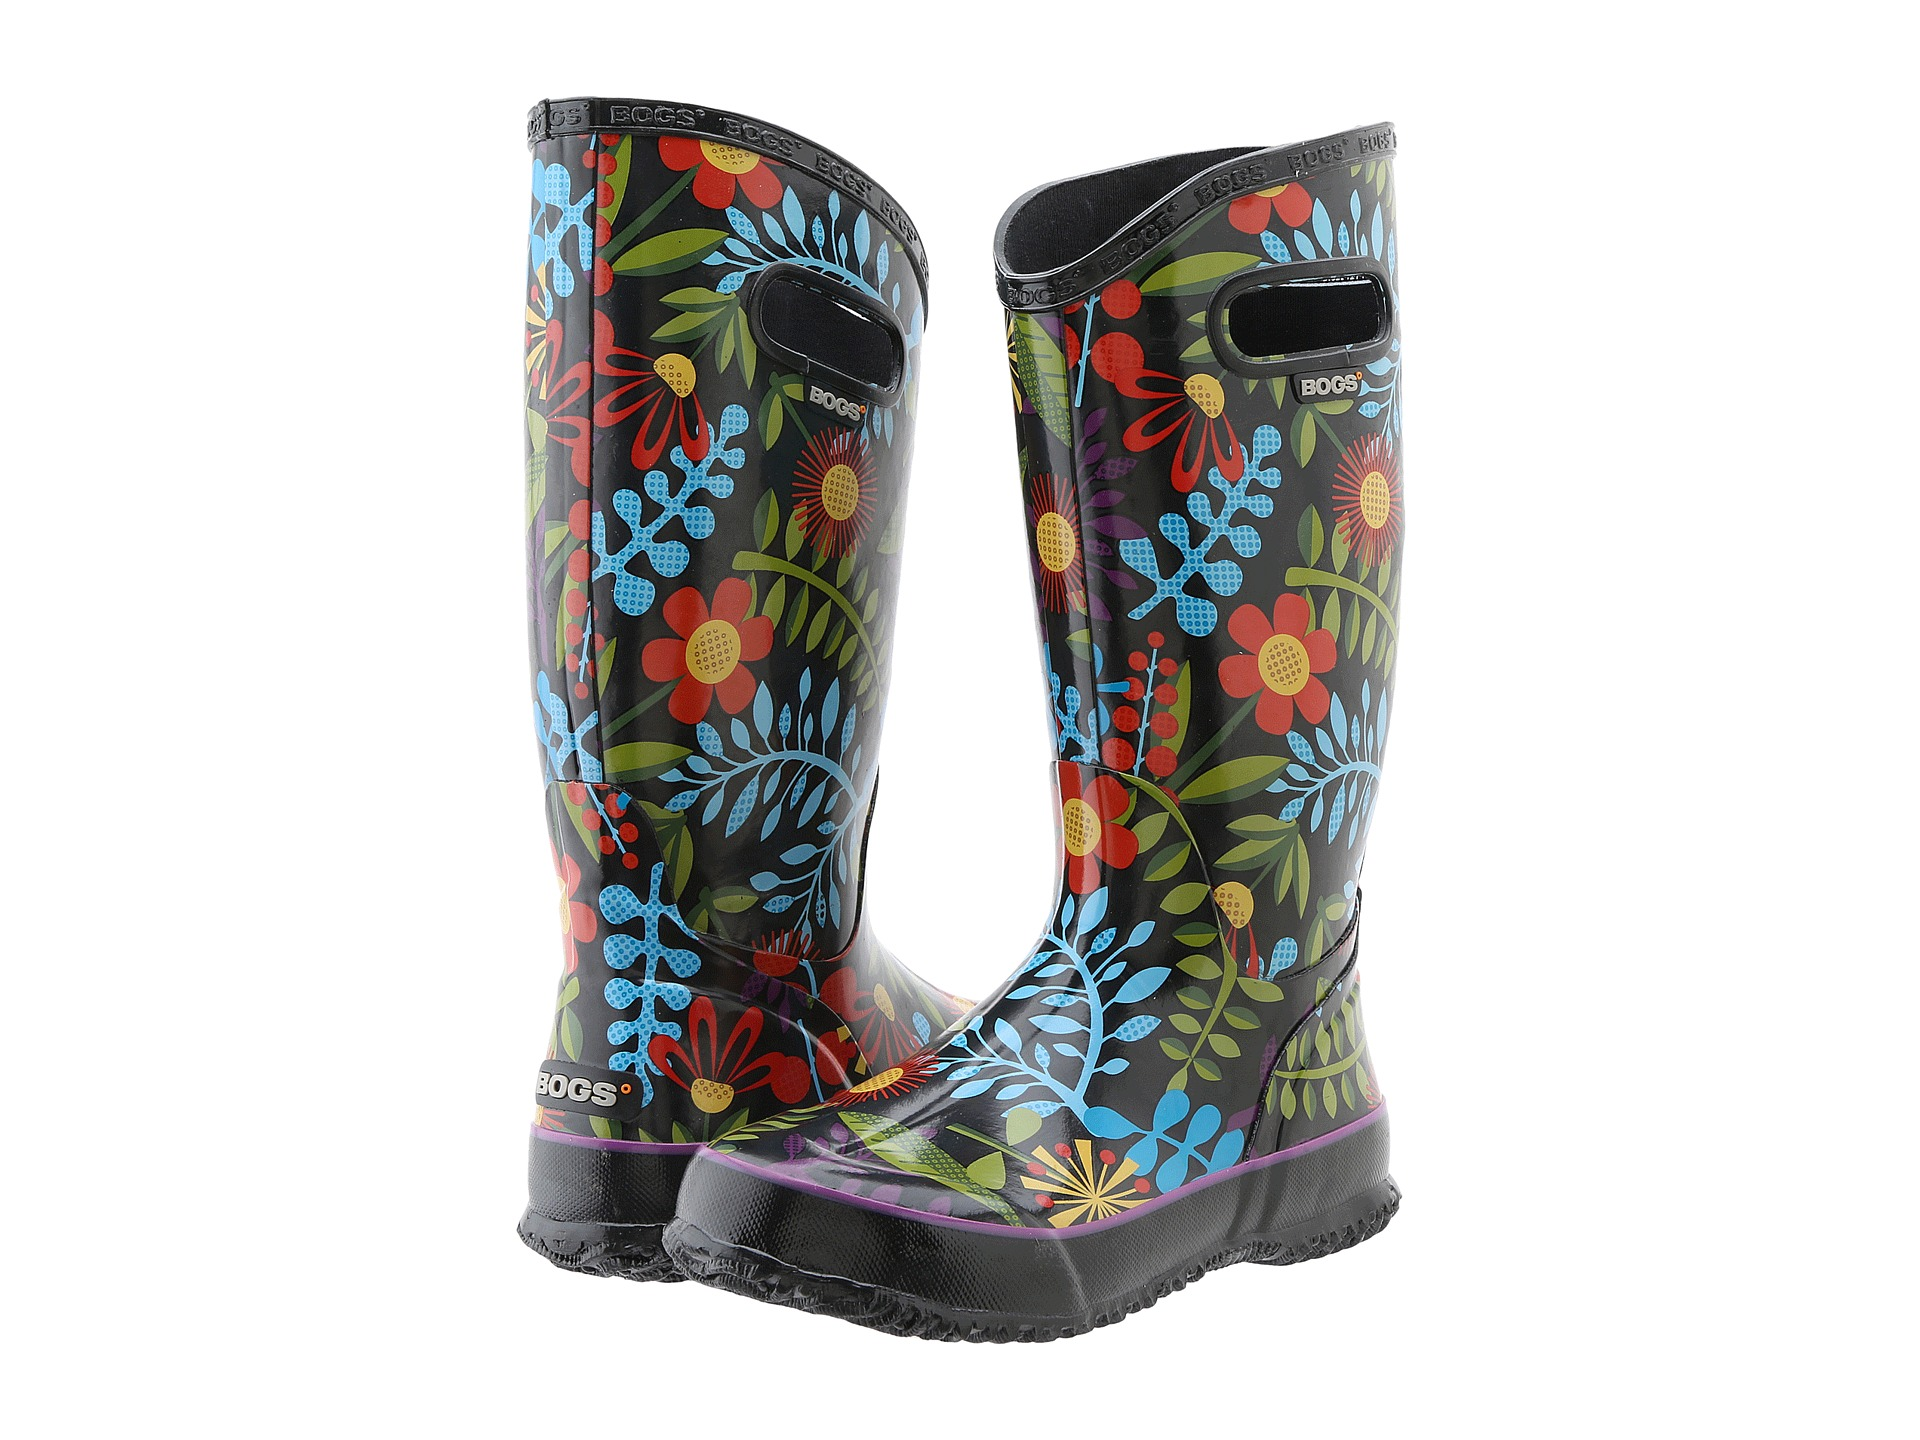 Best place to buy rain boots Shoes online for women